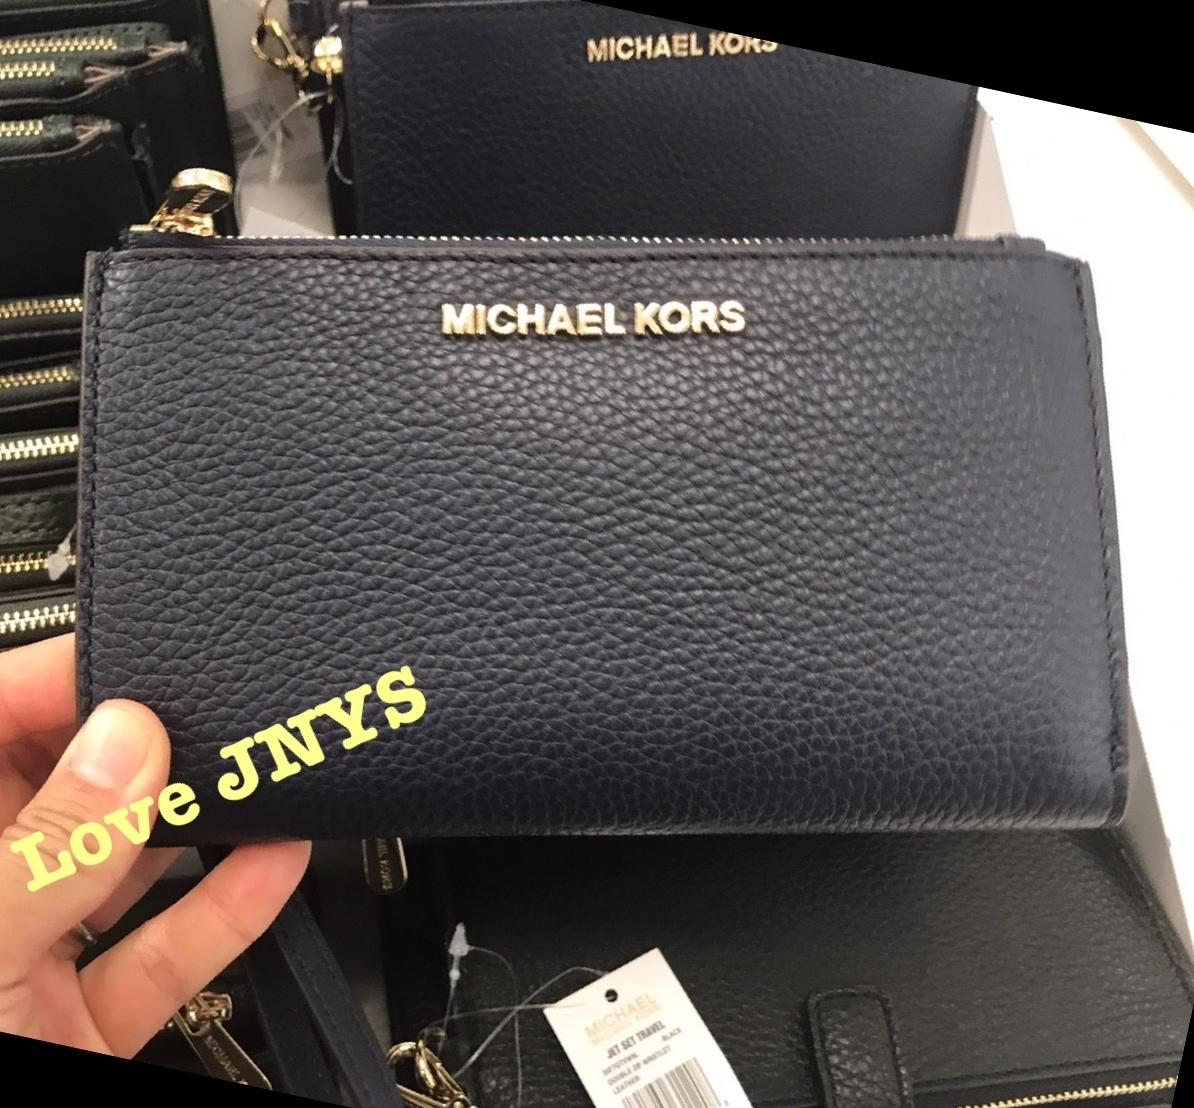 3-5日着可☆Michael Kors★JET SET TRAVEL DOUBLE ZIP WRISTLET